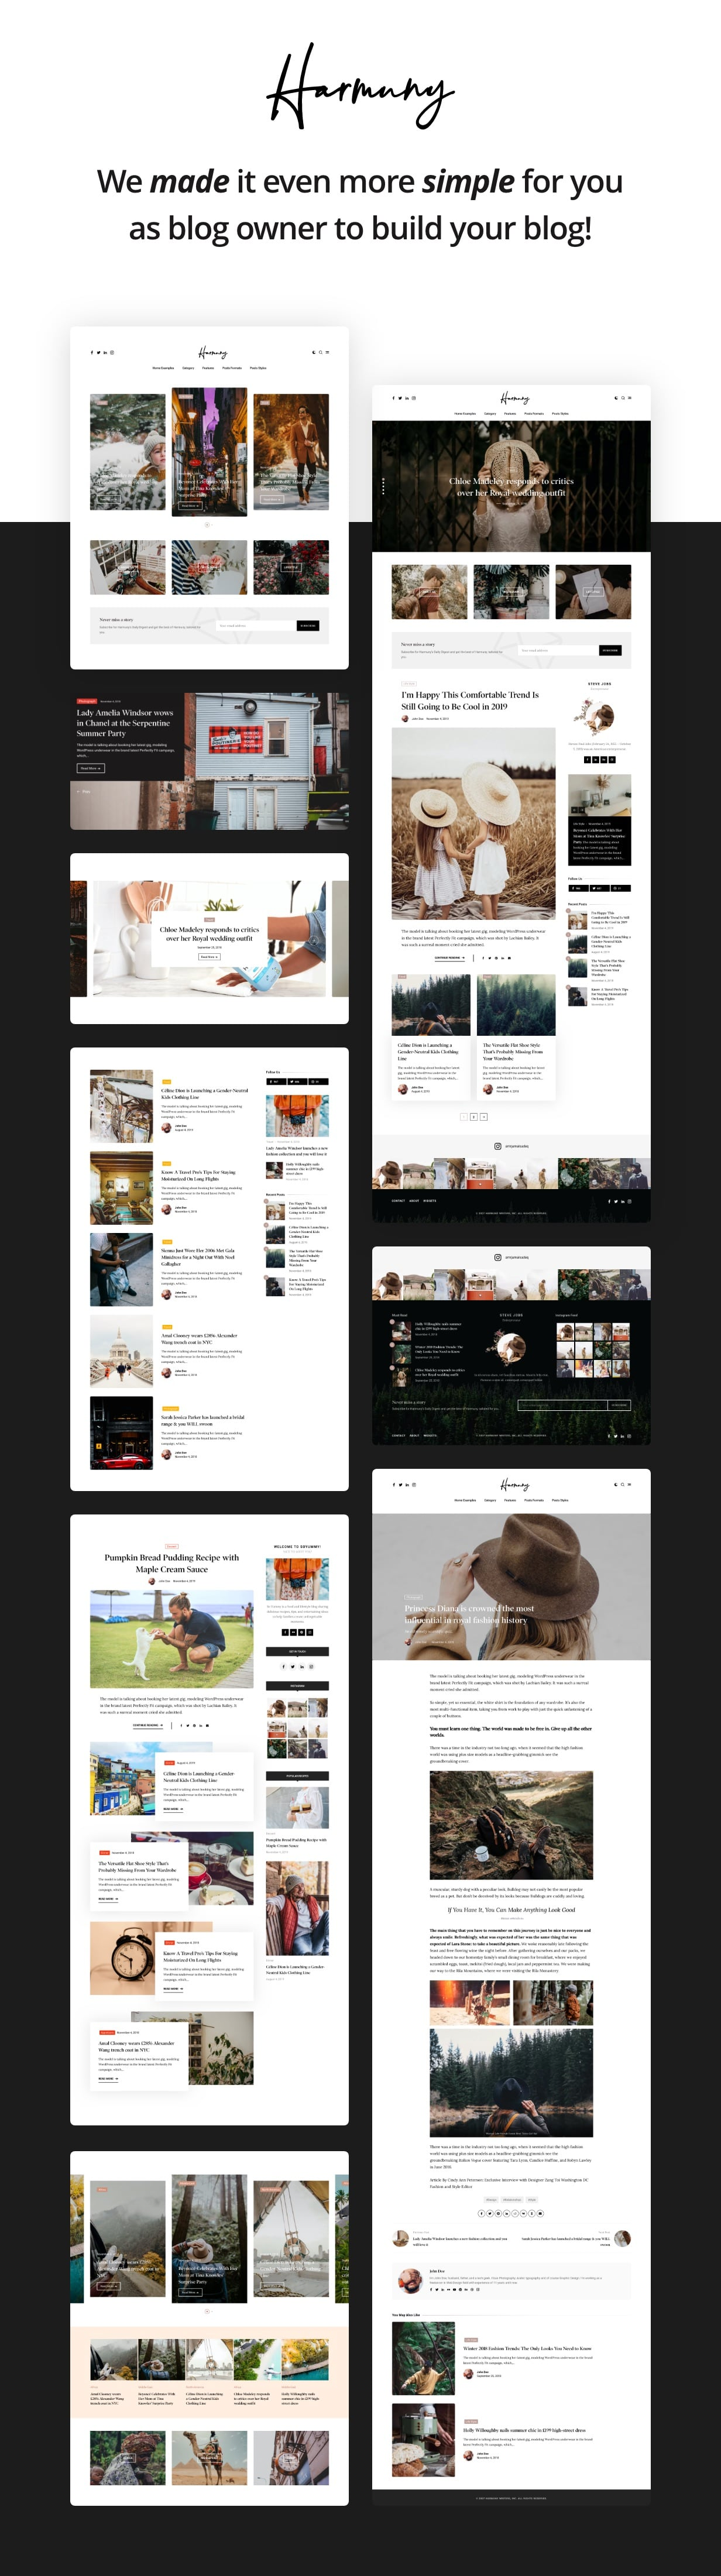 Hooray — Blog WordPress theme for Professional Writers - 1